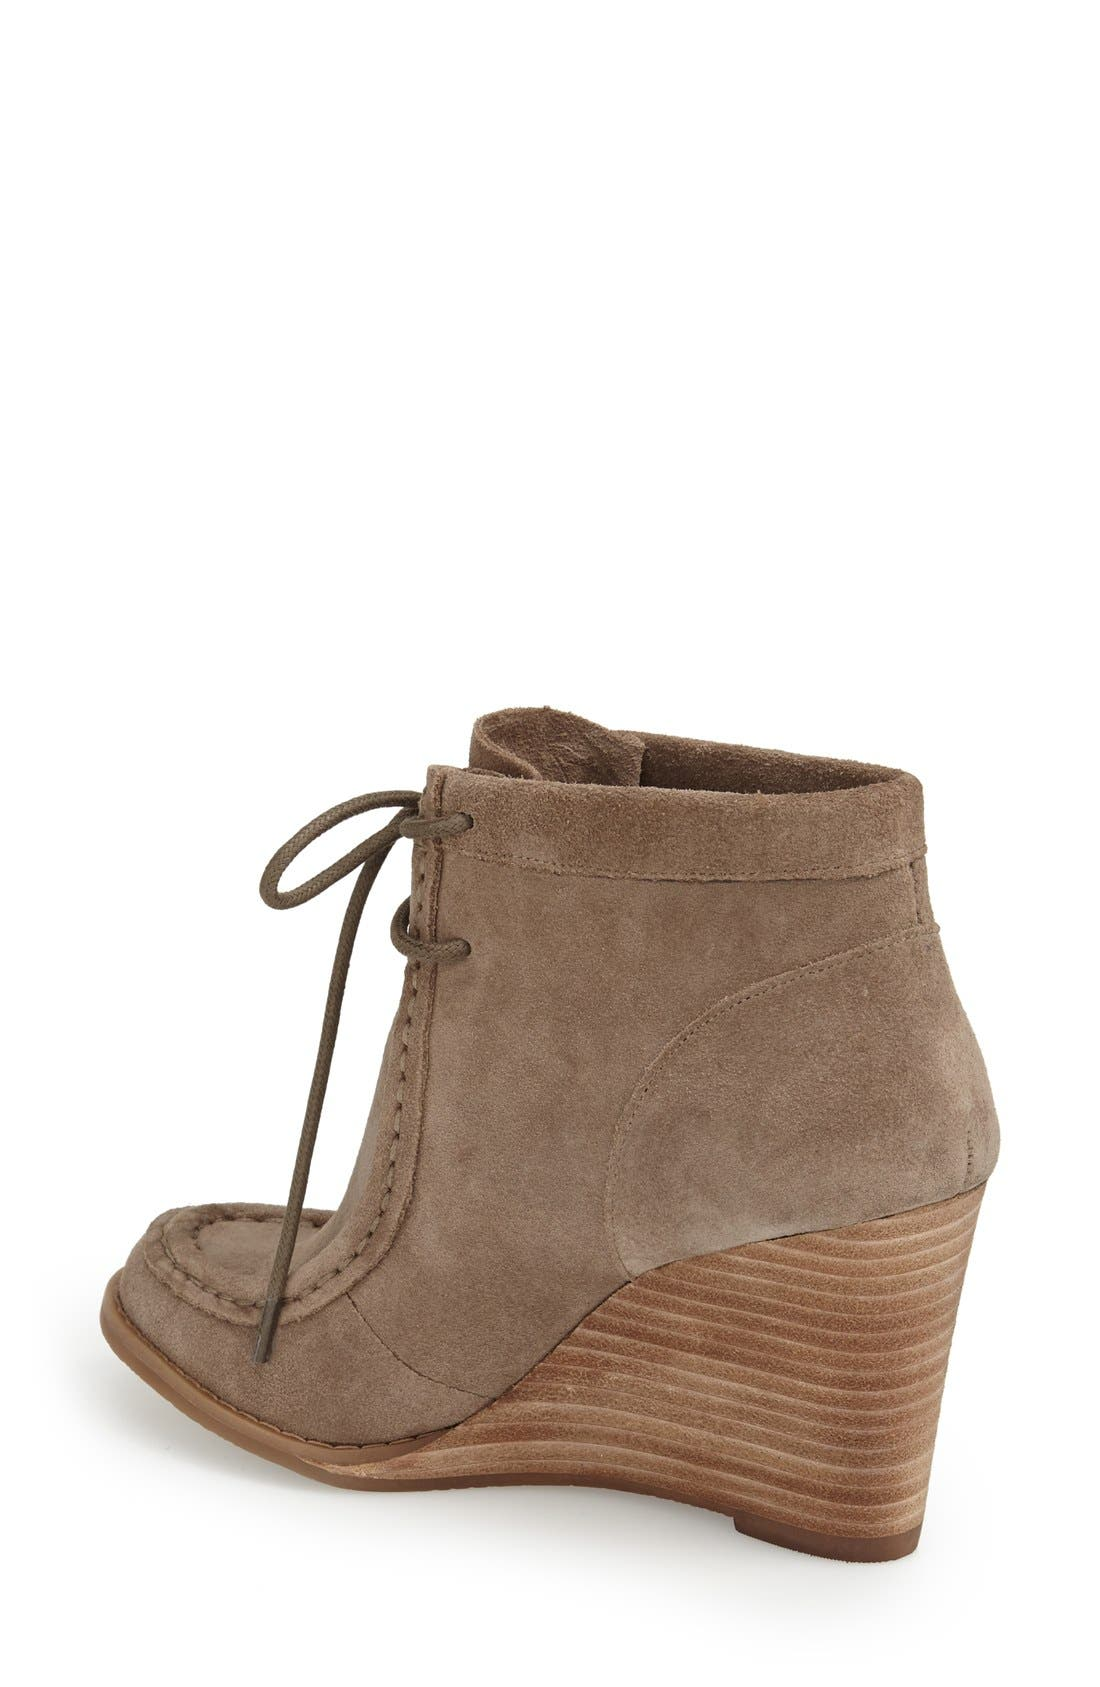 Alternate Image 2  - Lucky Brand 'Ysabel' Wedge Chukka Boot (Women)